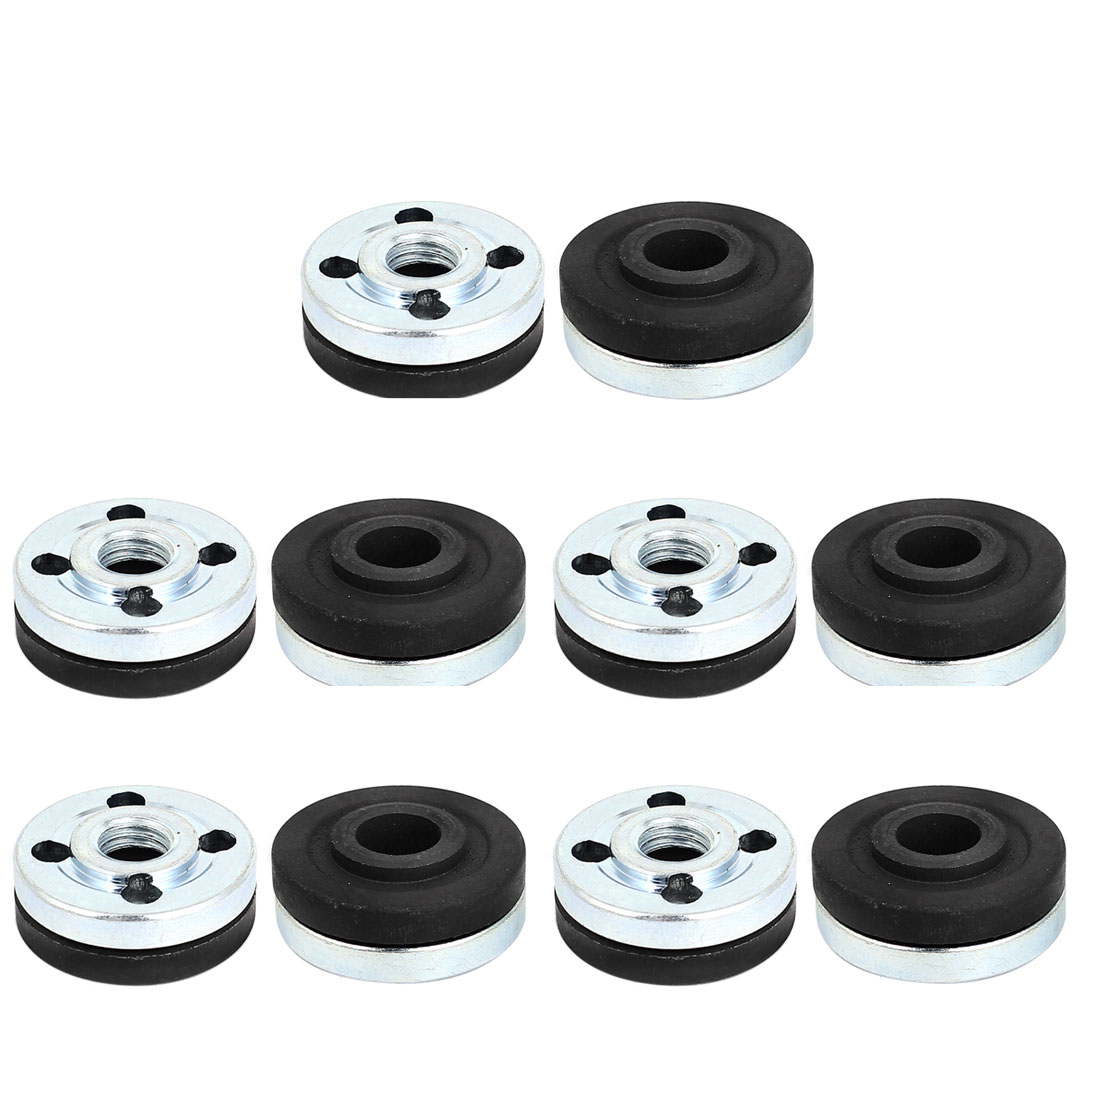 10 Pair Round Clamp Inner Outer Nuts Flange Fixing for Makita 9523 Angle Grinder